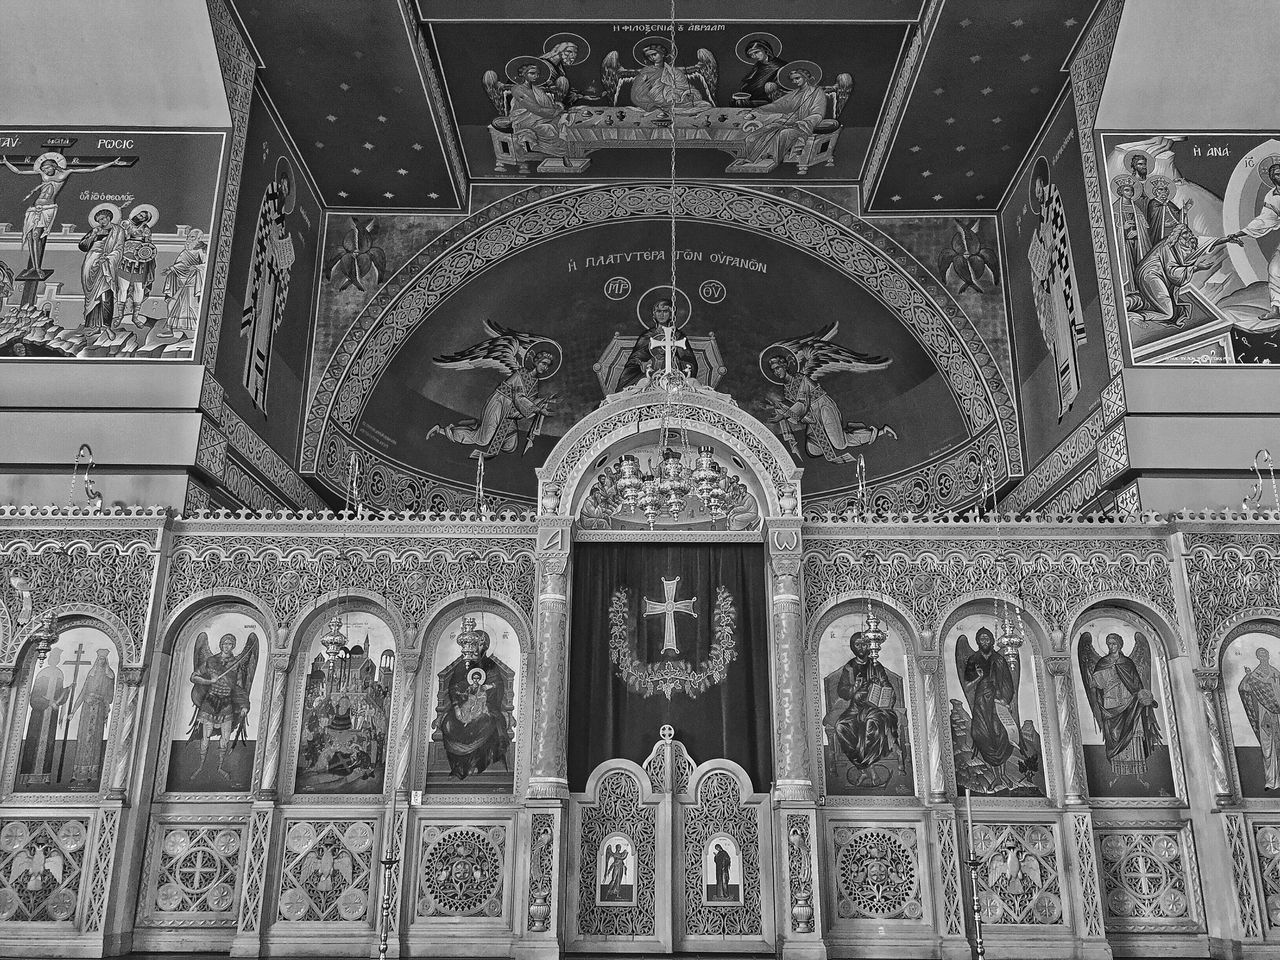 Holy Week 🙏🏼 Greek Orthodox Church Montréal Faith Peace Peace And Quiet Beautiful ♥ Love Easter Candles Icons Health, love & peace to all! Blackandwhite Photography Monochrome Shadows & Lights EyeEm Best Shots My Unique Style Popular Photos EyeEm Best Shots - Black + White Photography EyeEm Gallery Showcase April Details Light Love ♥ Pray Peace!